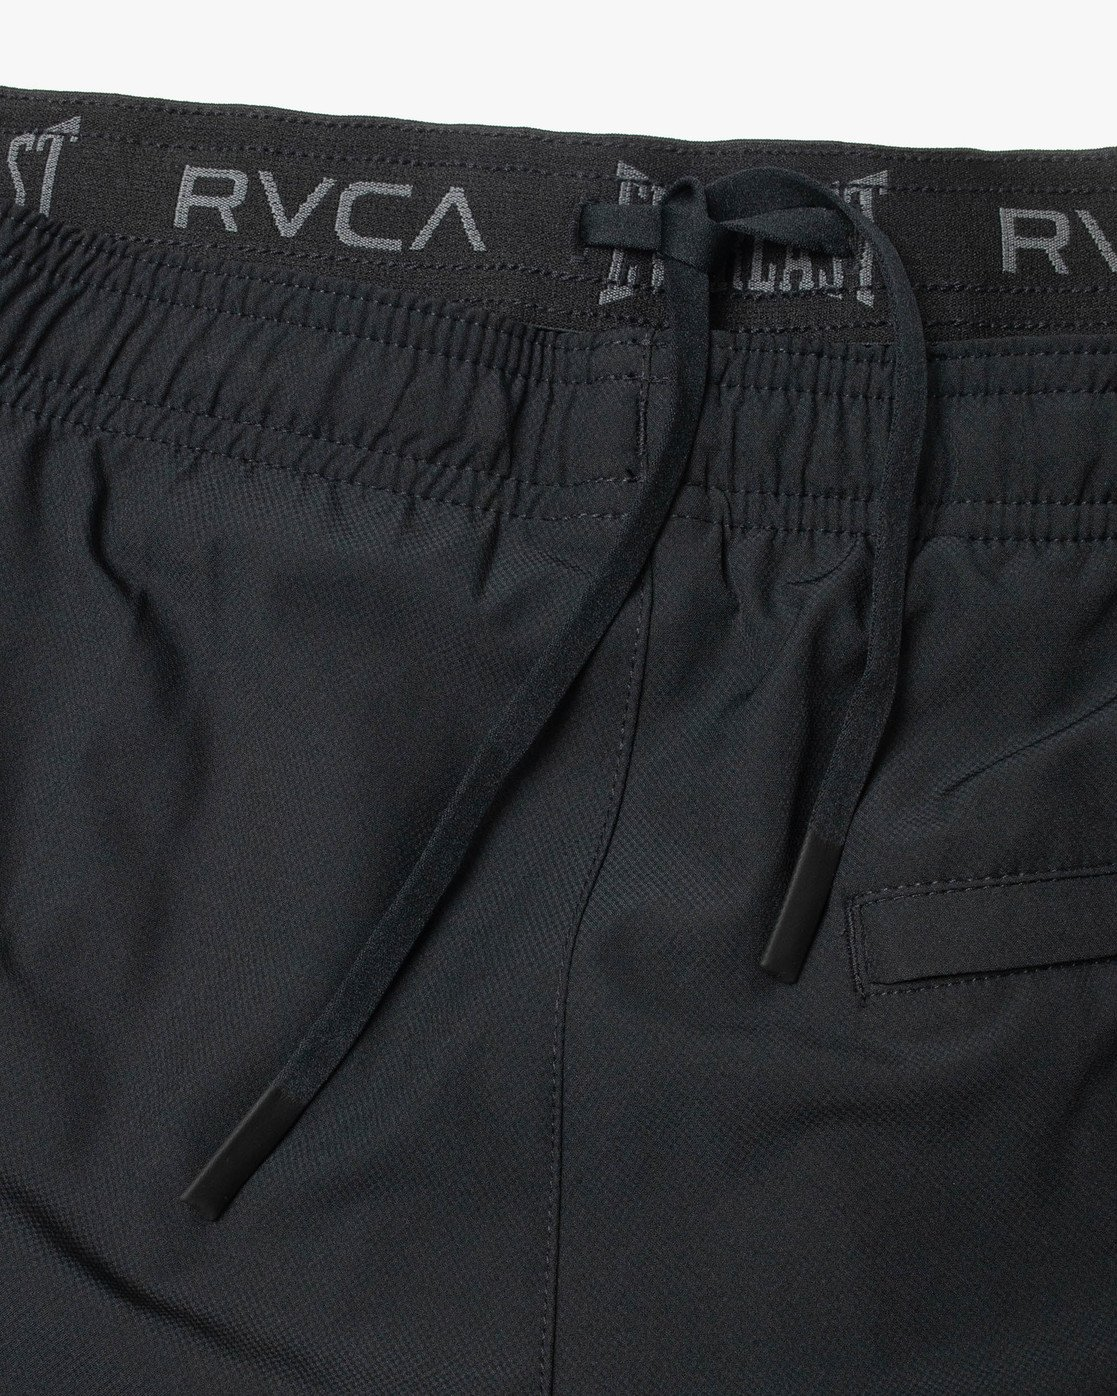 "20 EVERLAST YOGGER IV ATHLETIC SHORTS 17"" Black V2091REY RVCA"